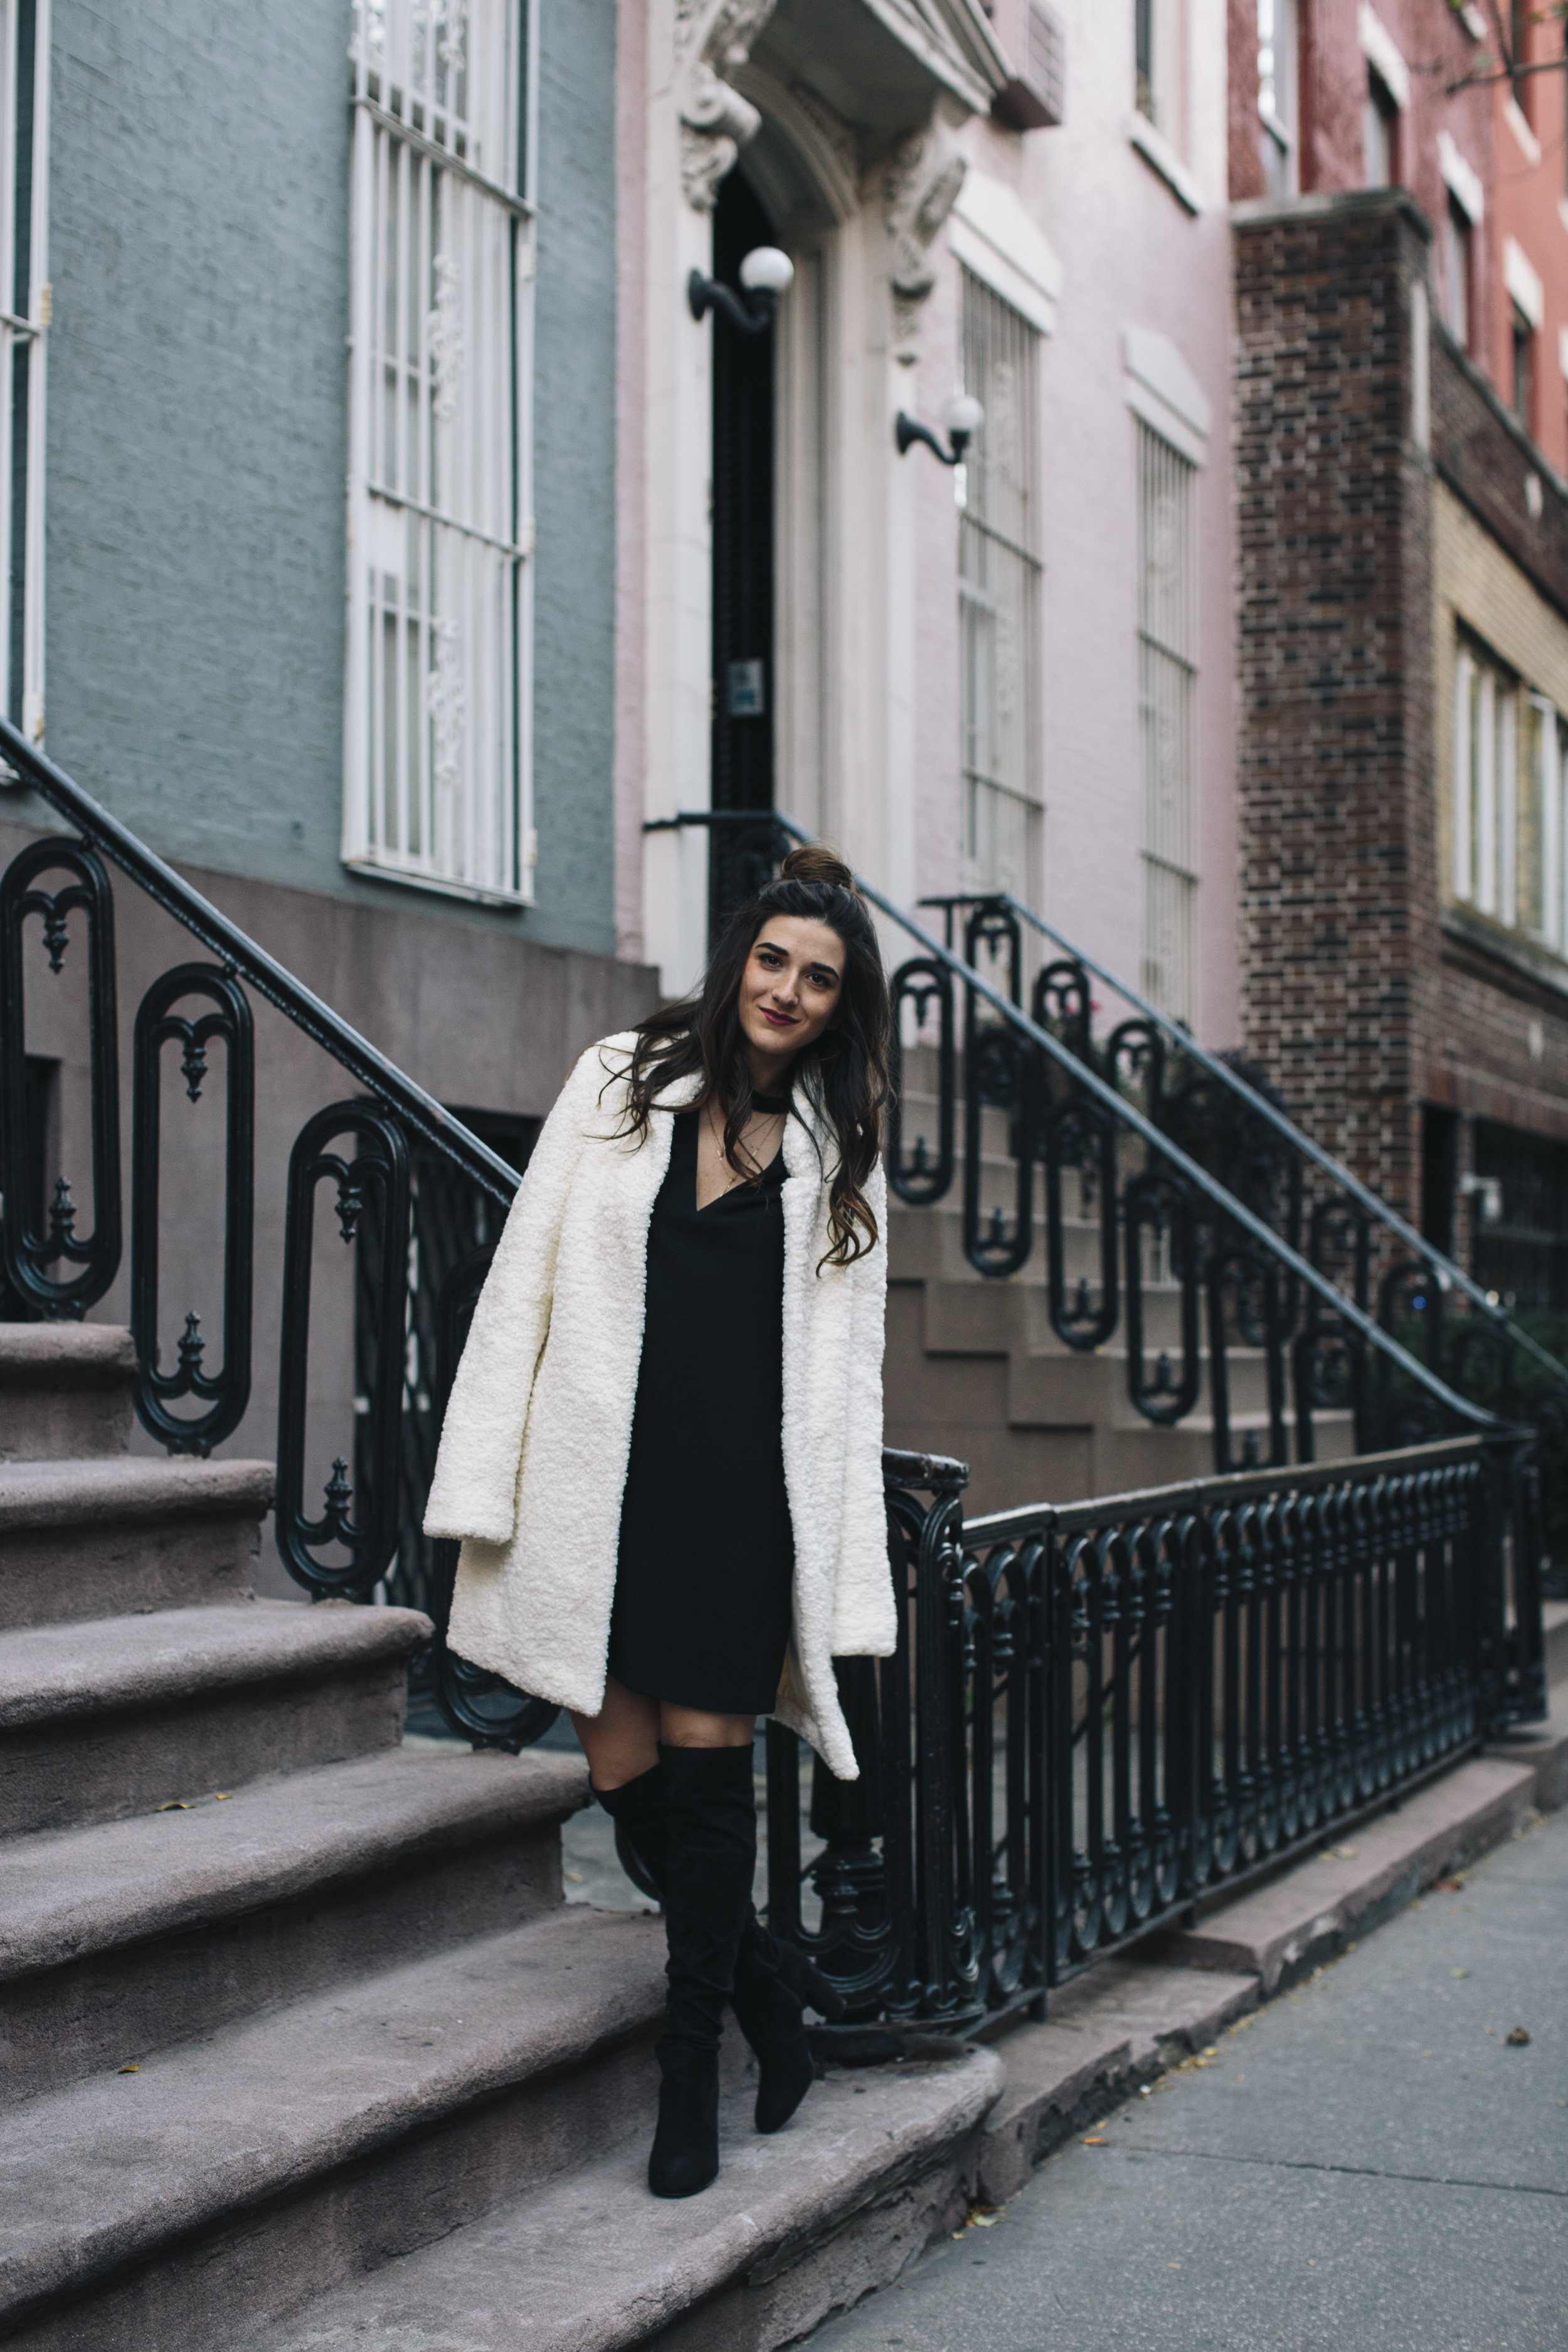 Teddy Bear Coat + OTN Boots How To Avoid Blogger Depression Louboutins & Love Fashion Blog Esther Santer NYC Street Style Blogger Outfit OOTD Trendy Ivanka Trump Nordstrom Bloomingdales Online Shopping Black Dress Zara Shoes Bun Pretty Wear Girl Women.jpg